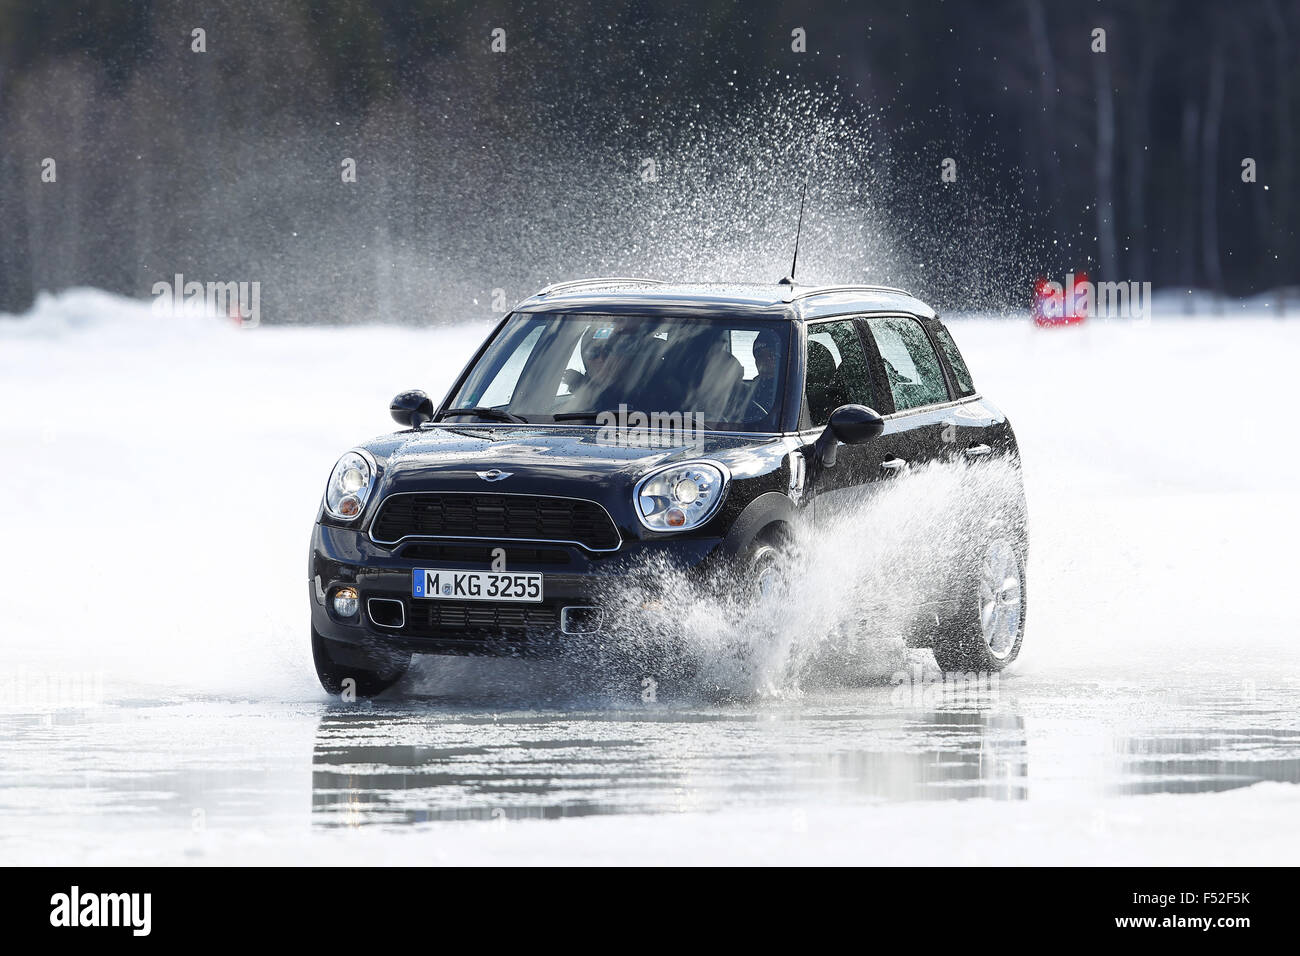 Car, Mini, year of construction in 2012, black, moving, Four-wheel drive on ice and snow, water splashes, - Stock Image